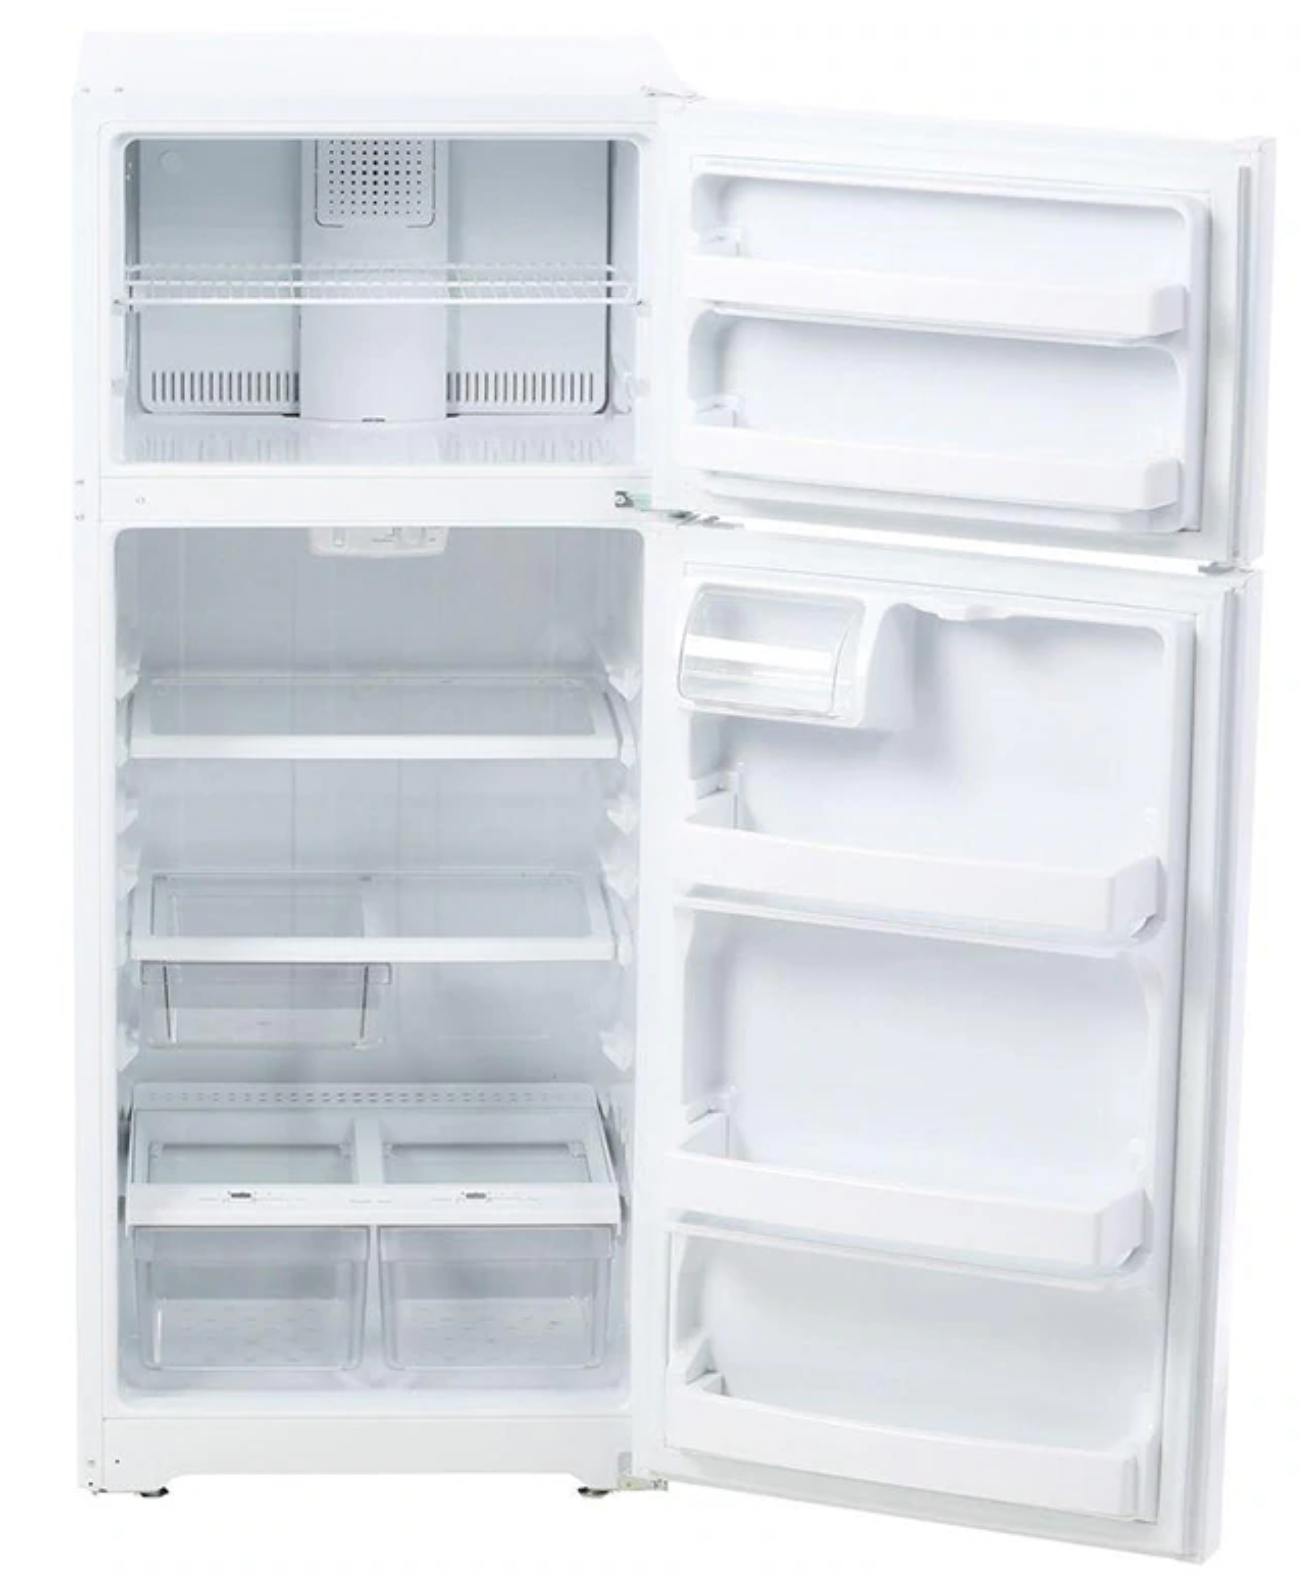 Ge 28 Quot Top Freezer Refrigerator White With 4 Year Warranty